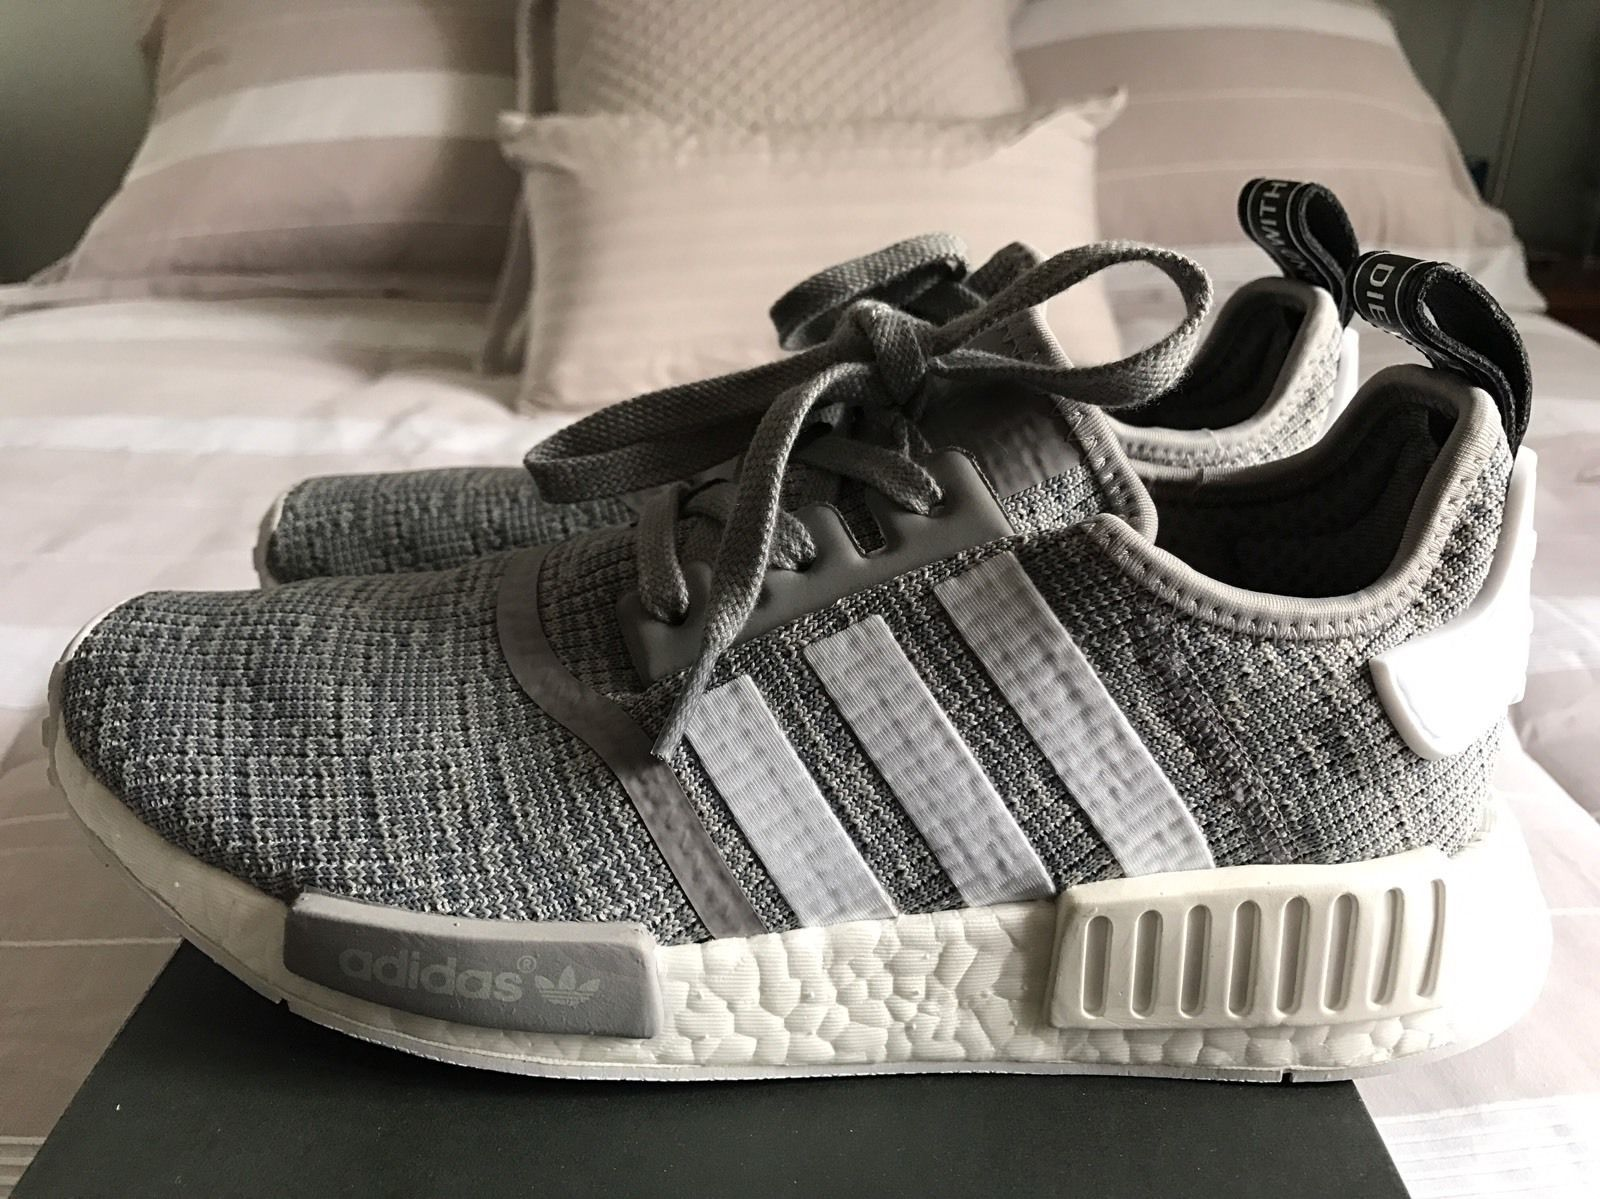 outlet store e2efe d3207 Adidas NMD R1 Glitch Solid Grey Camo Size 8.5 Purchased a half size too  small for me. So I cannot use these. They are brand new with box ...